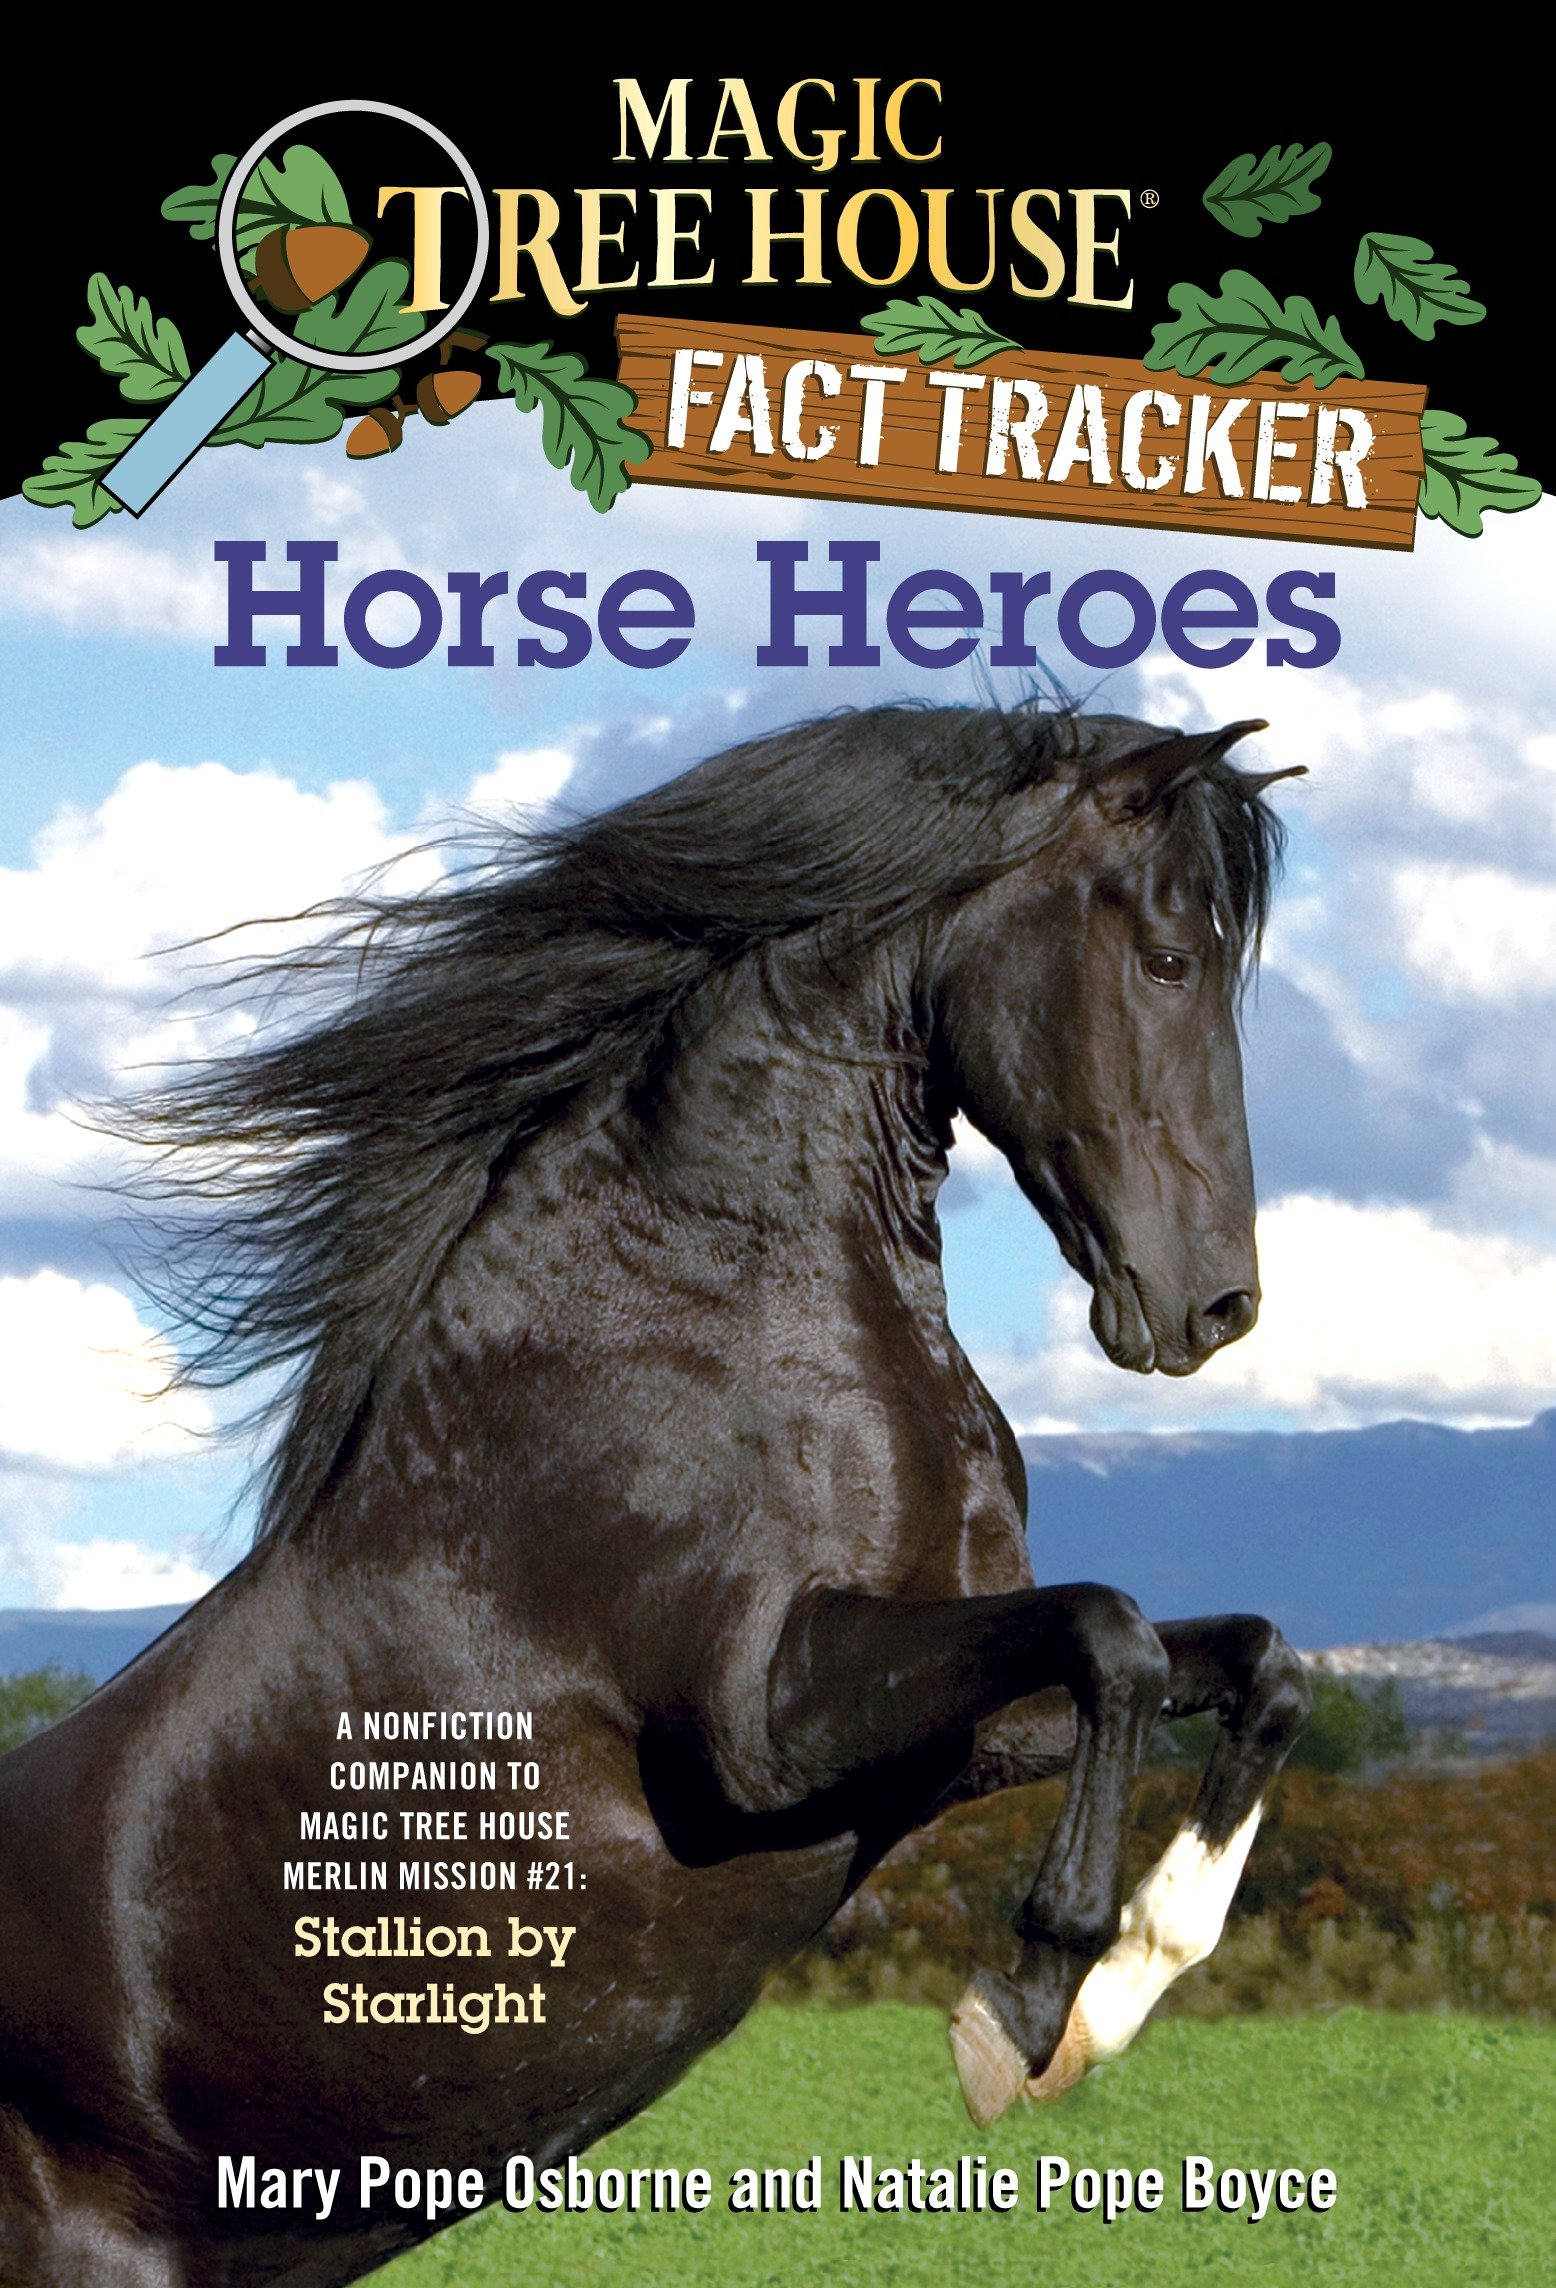 Horse Heroes A Nonfiction Companion to Magic Tree House #49: Stallion by Starlight